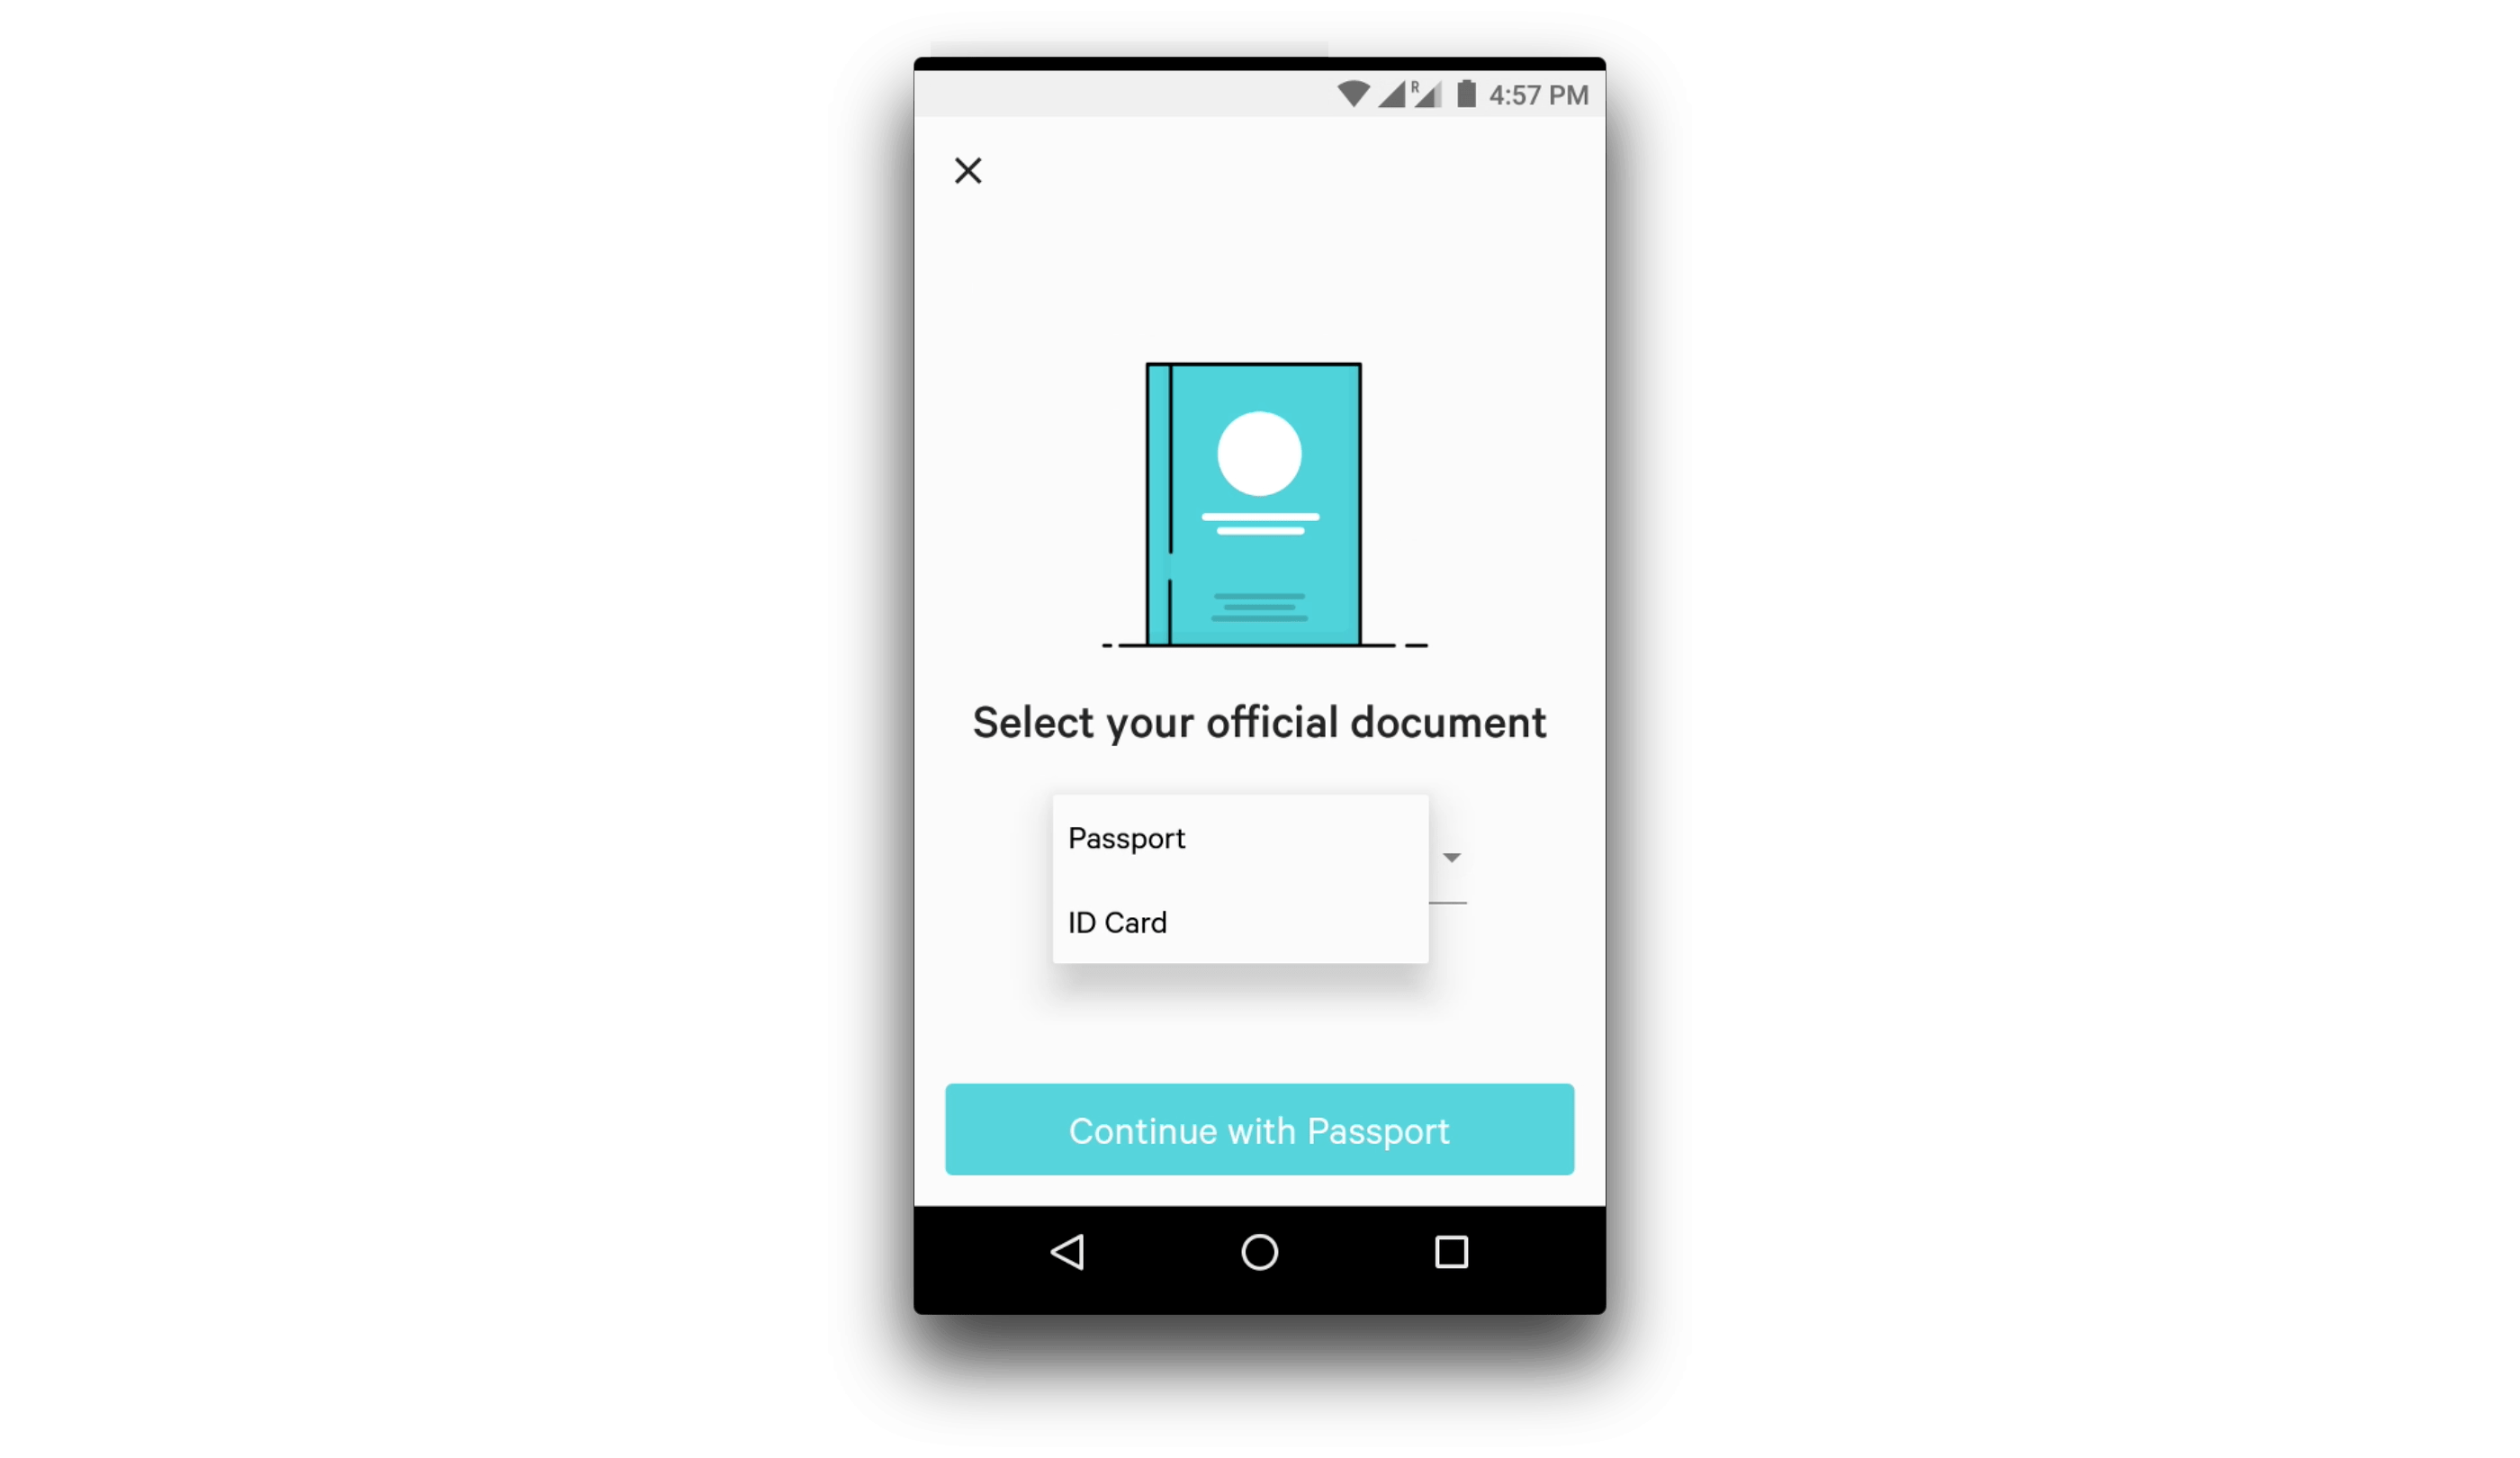 verify your identity in the n26 app